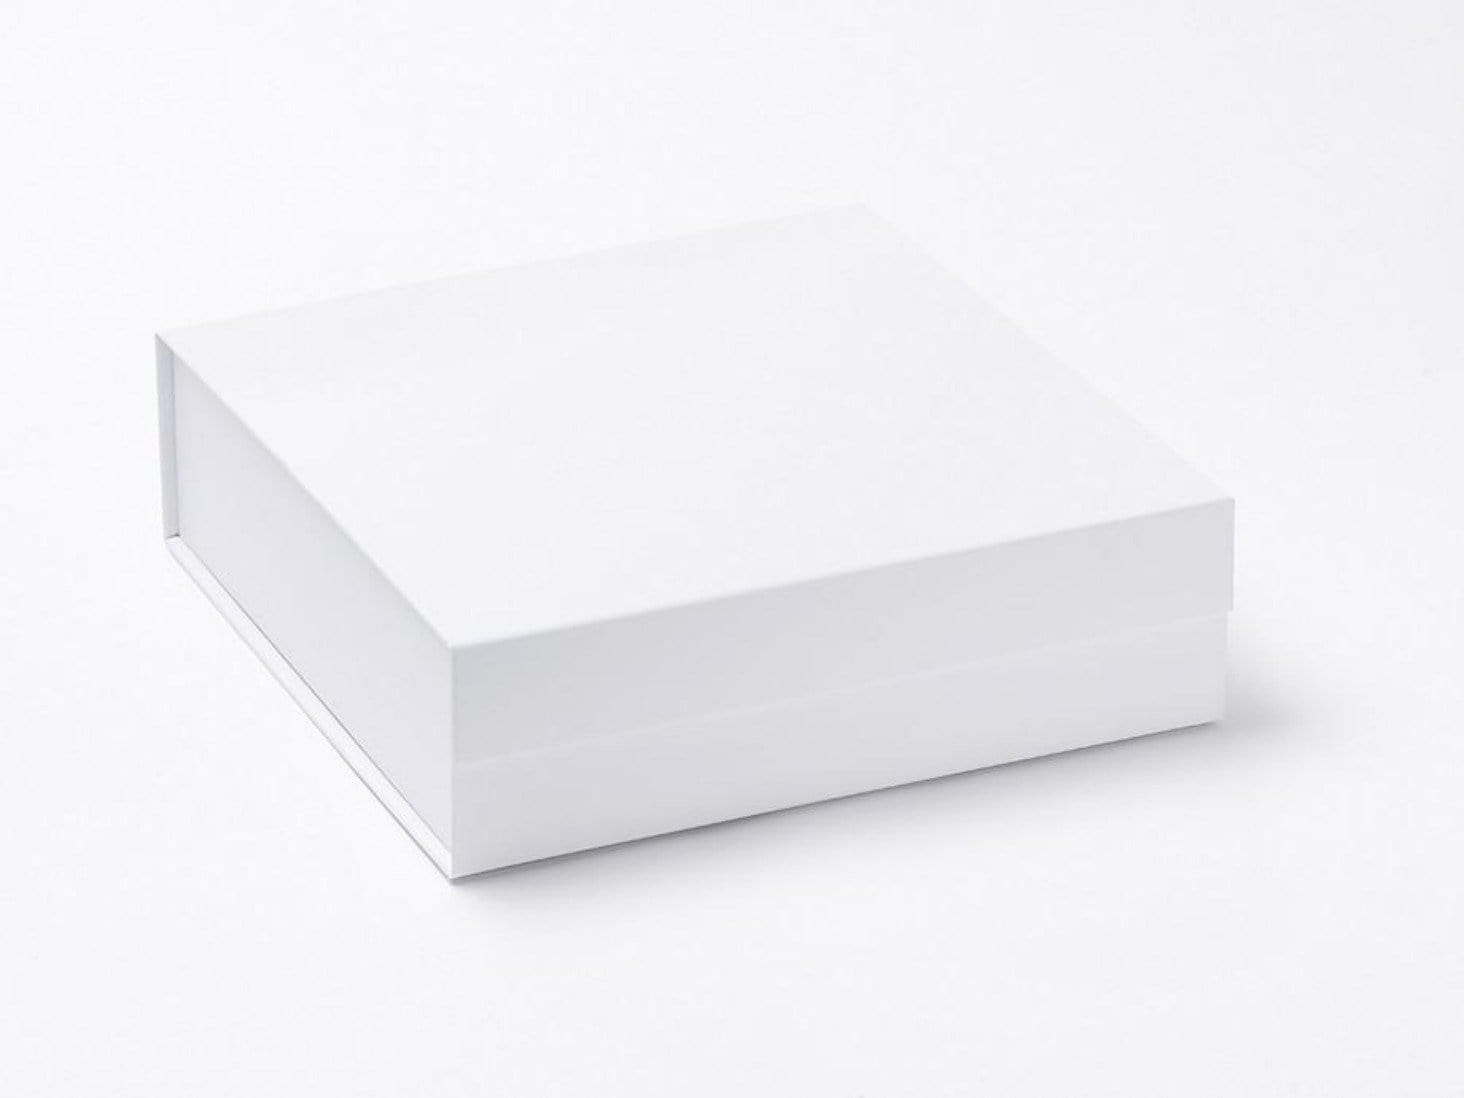 White Medium Folding Gift Box or Keepsake Hamper Box